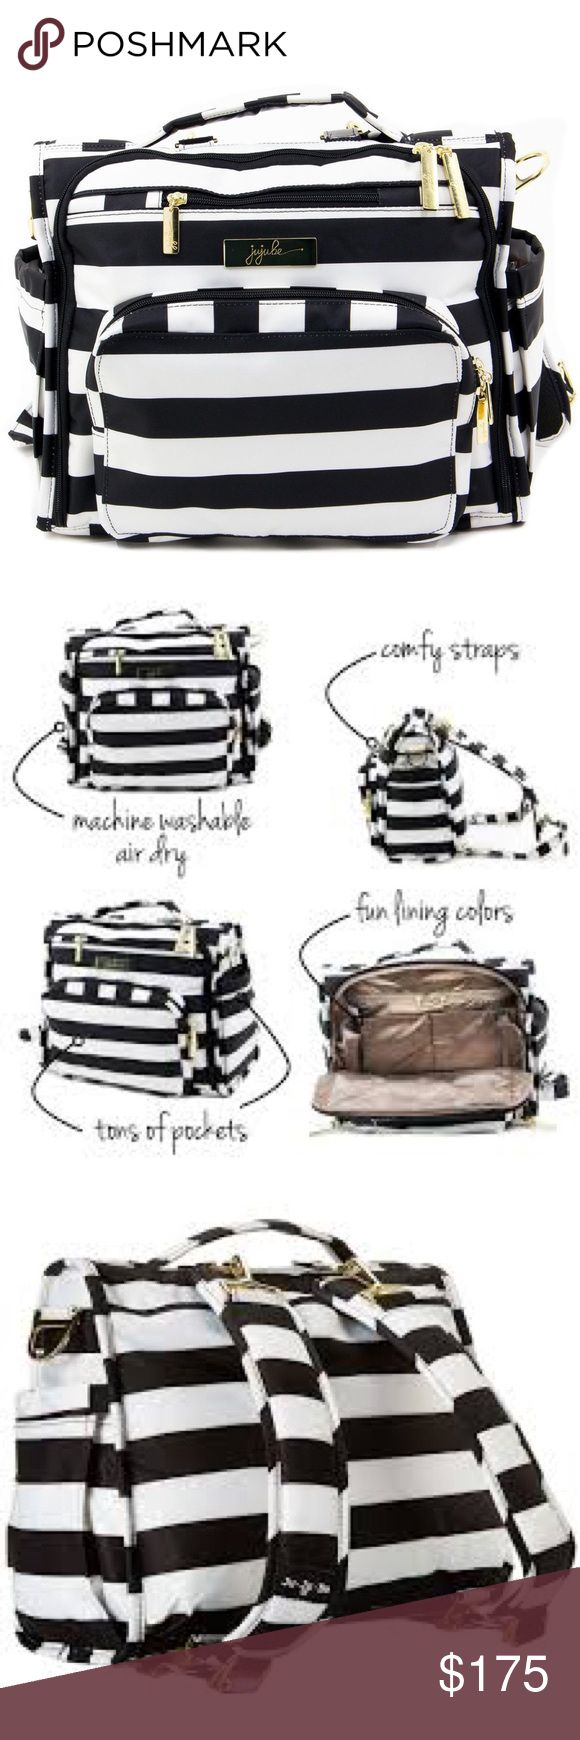 BNWT!!! Jujube BFF First Lady Brand new, never used Jujube messenger backpack (BFF) combo in black and white stripes (First Lady). You may not be First Lady but this bag will provide you with all of the accommodations you need to be a parent. Comfortable backpack straps easily adjust to fit your needs or use the messenger style for a sleek chic mommy look. Features multiple pockets, washable waterproof material and fashionable design. jujube Bags Baby Bags